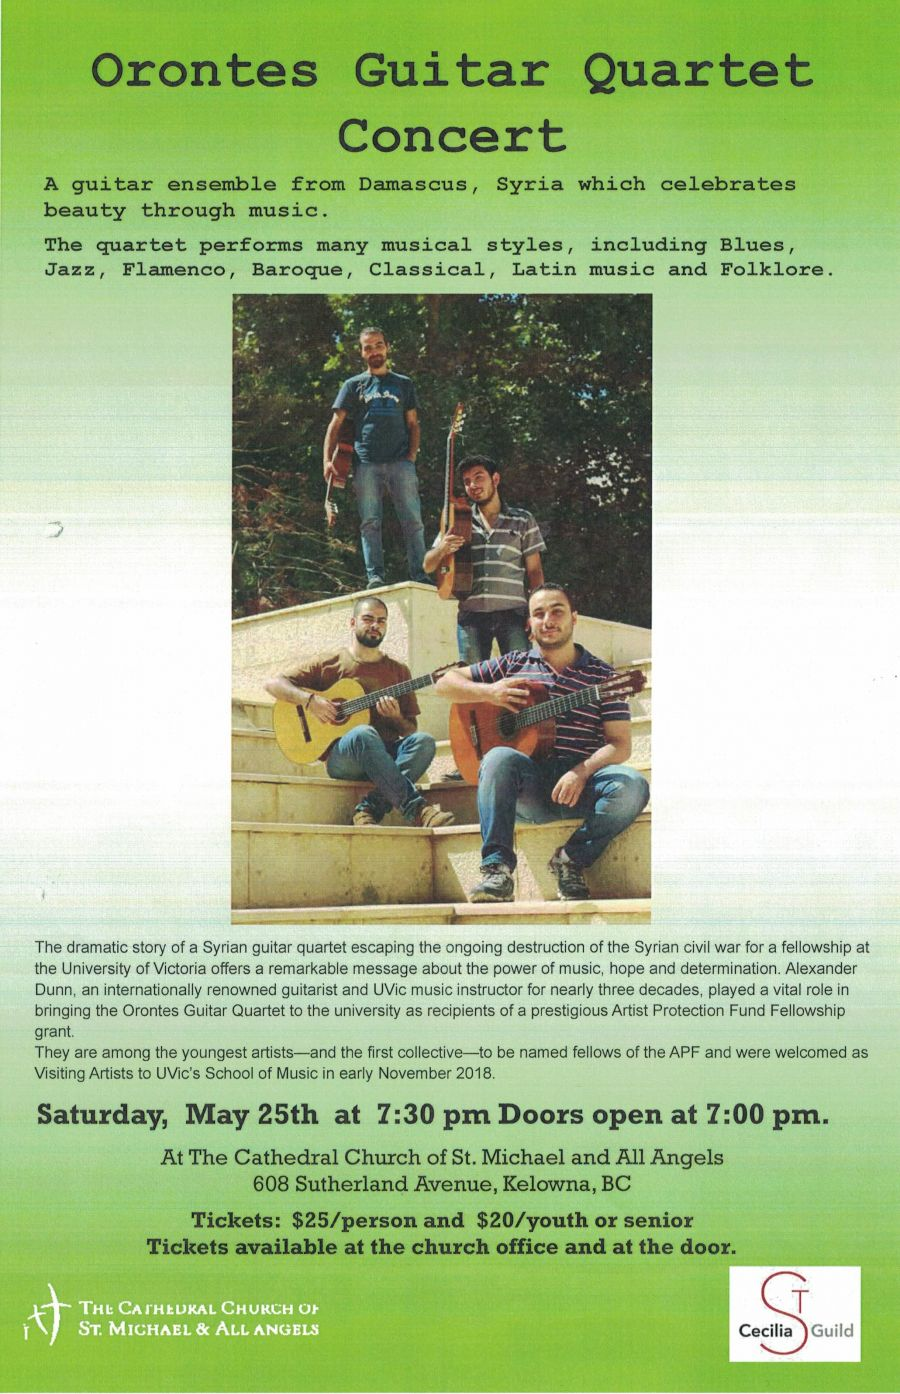 Syrian guitarists who escaped civil war are coming to play in the Okanagan